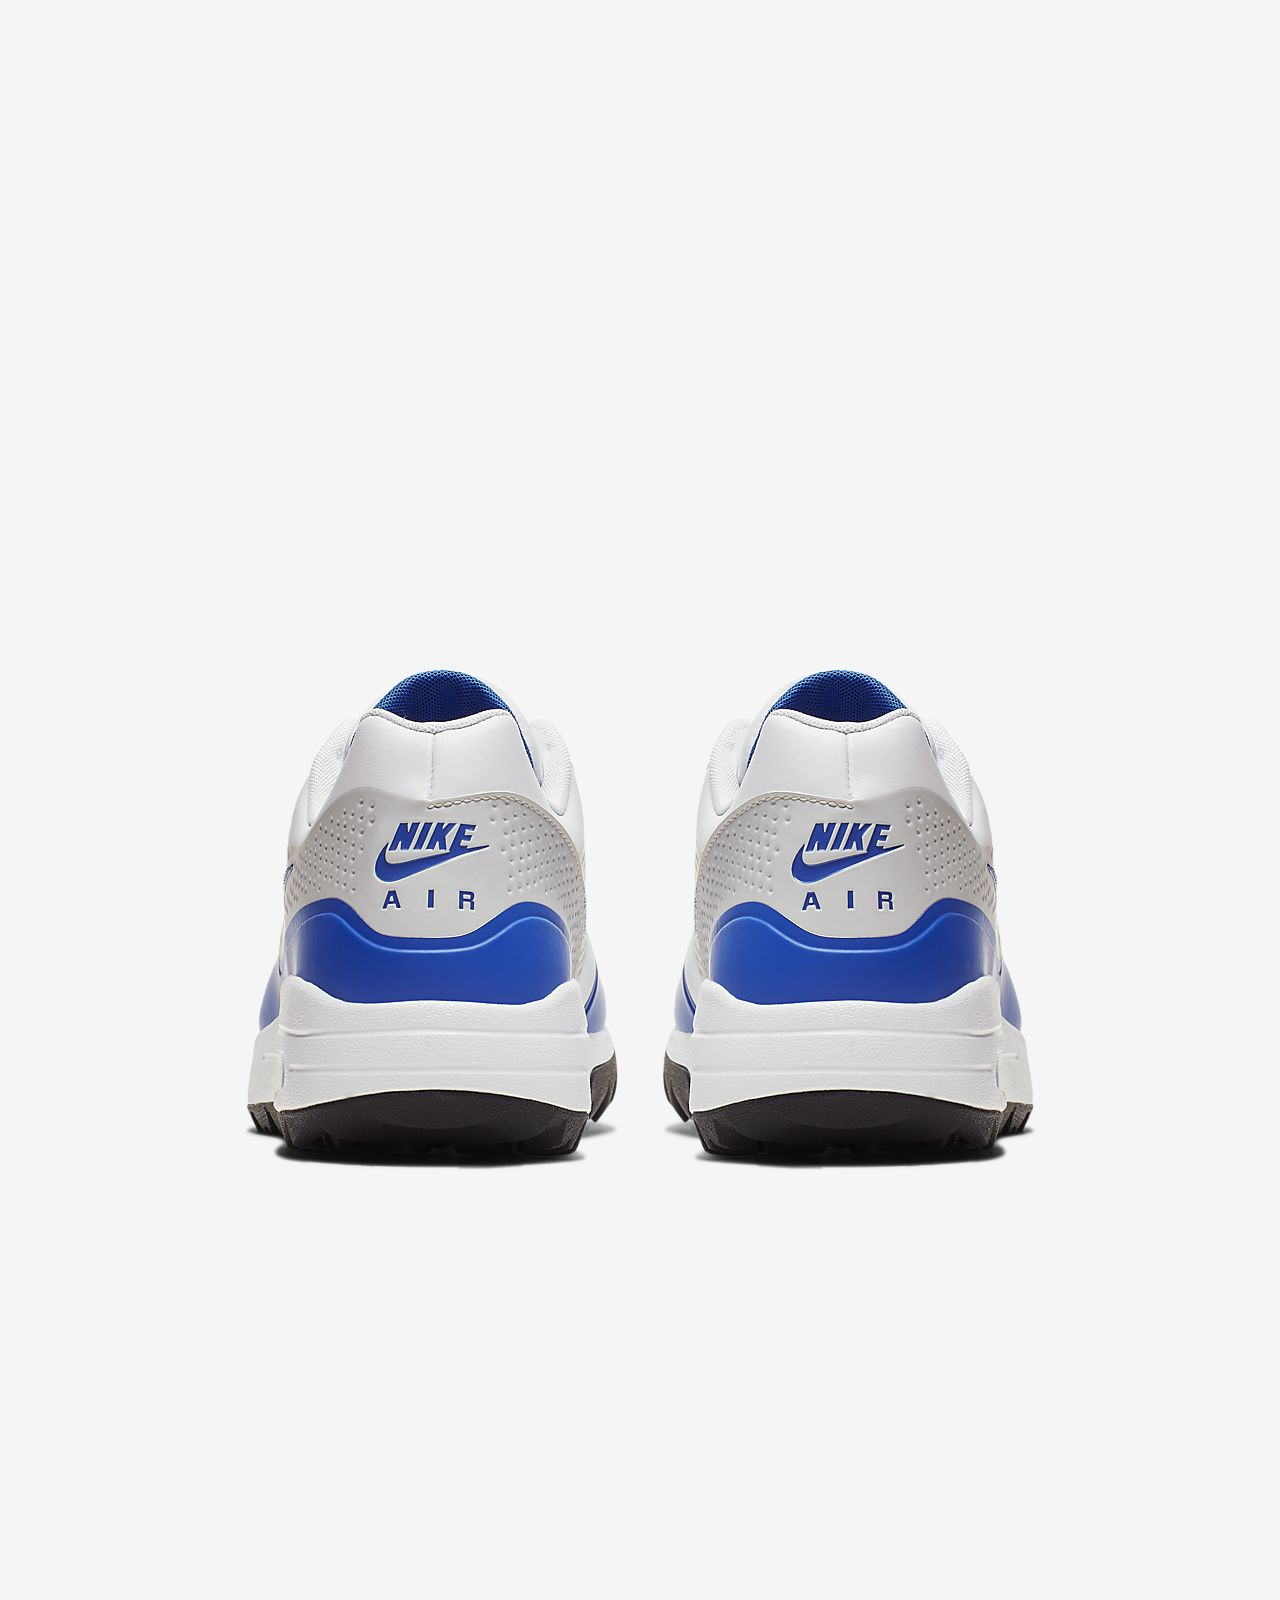 promo code 33929 f6419 ... Nike Air Max 1 G Men s Golf Shoe